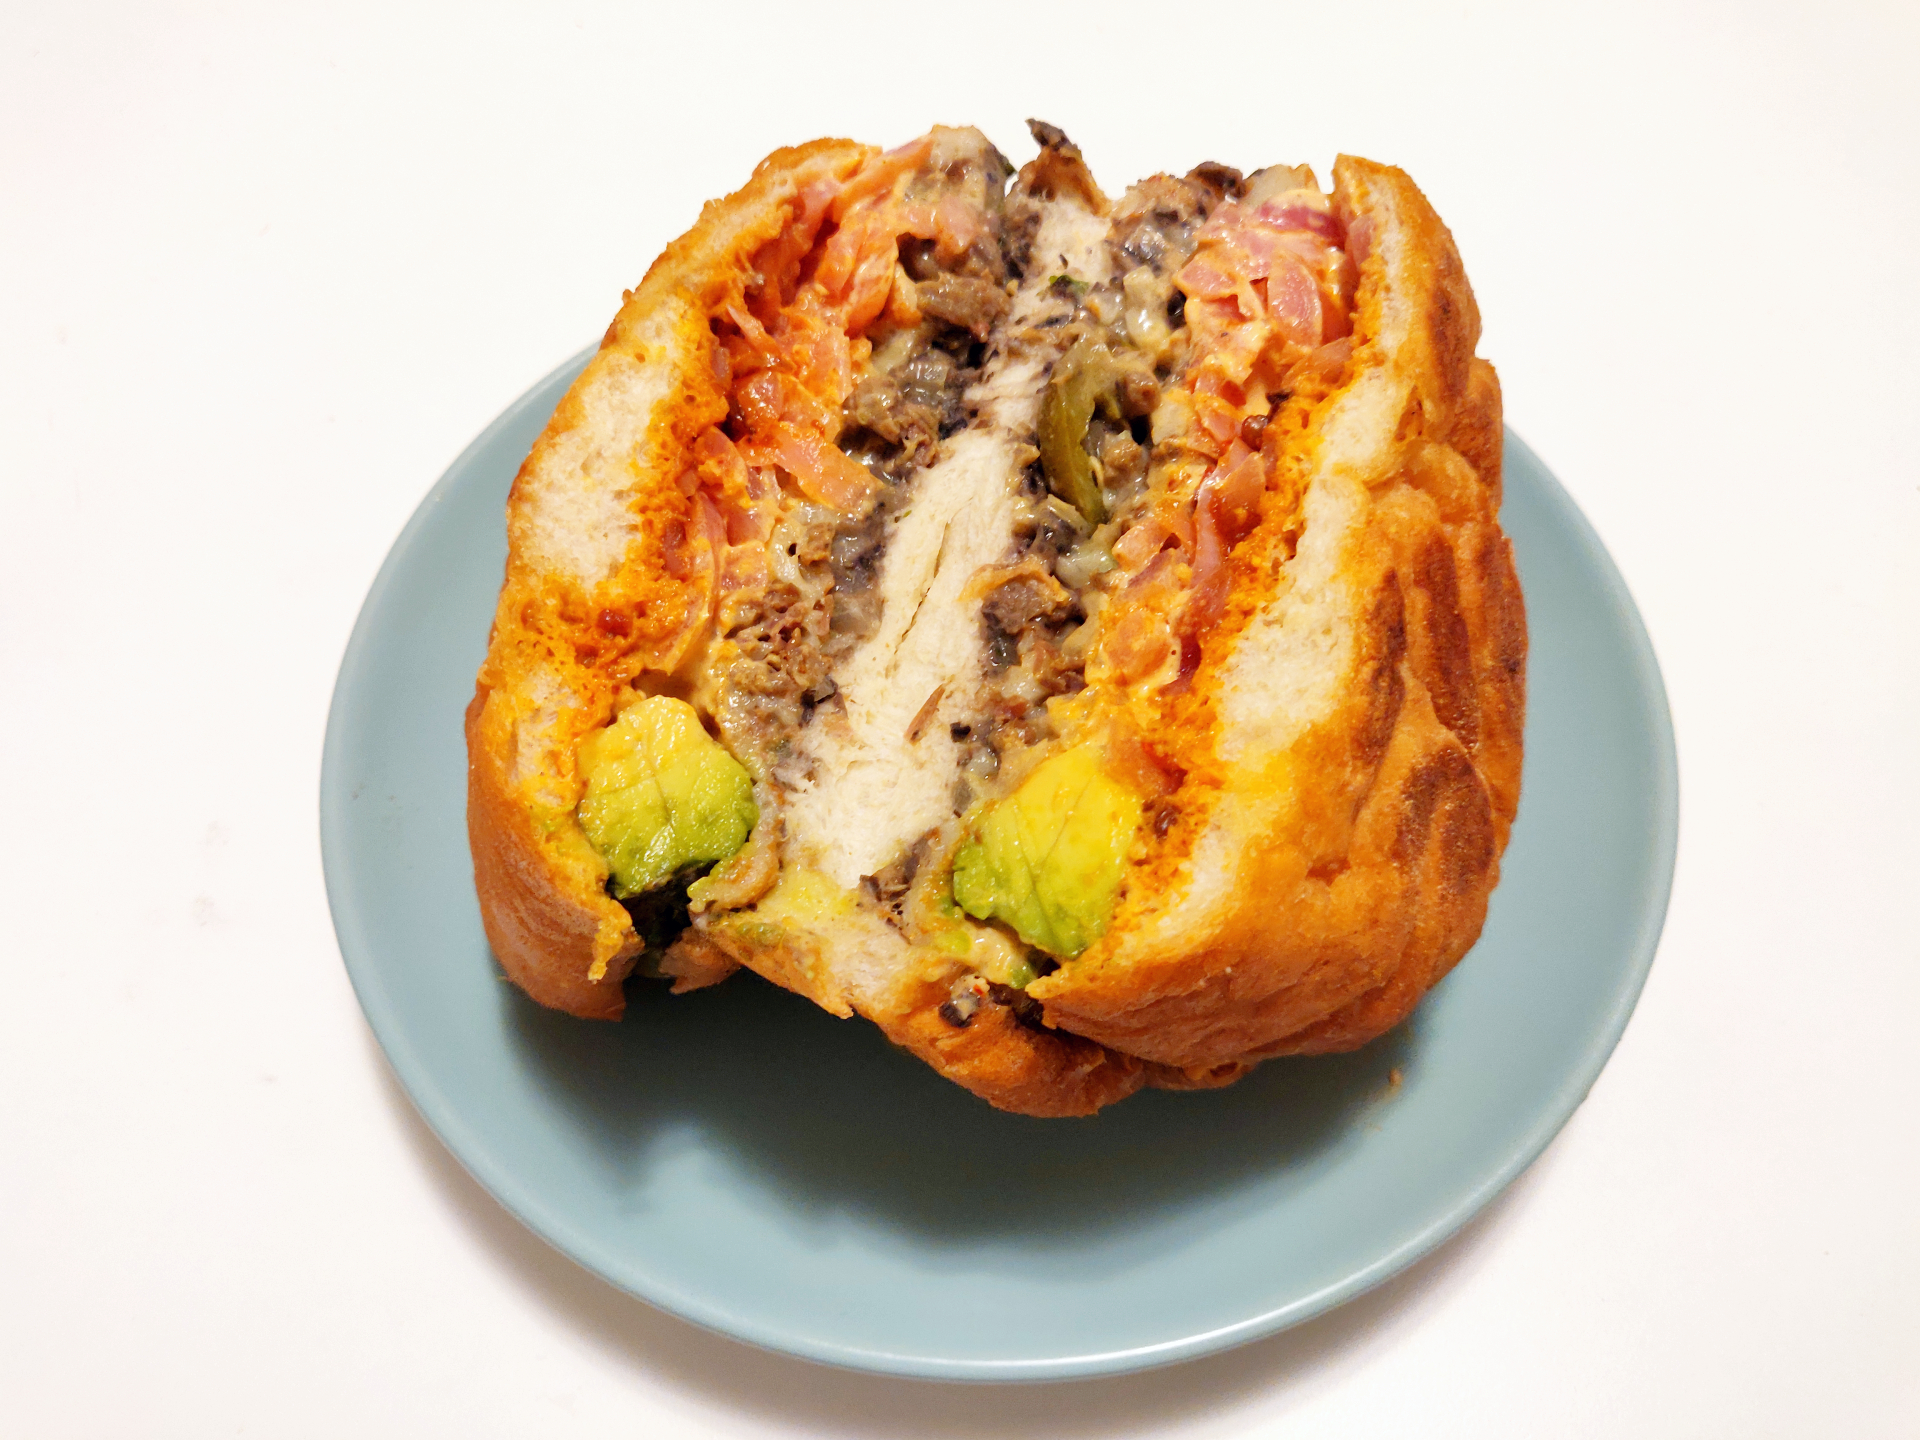 A thick Mexican sandwich is cut open and sits on a blue plate on a light background.